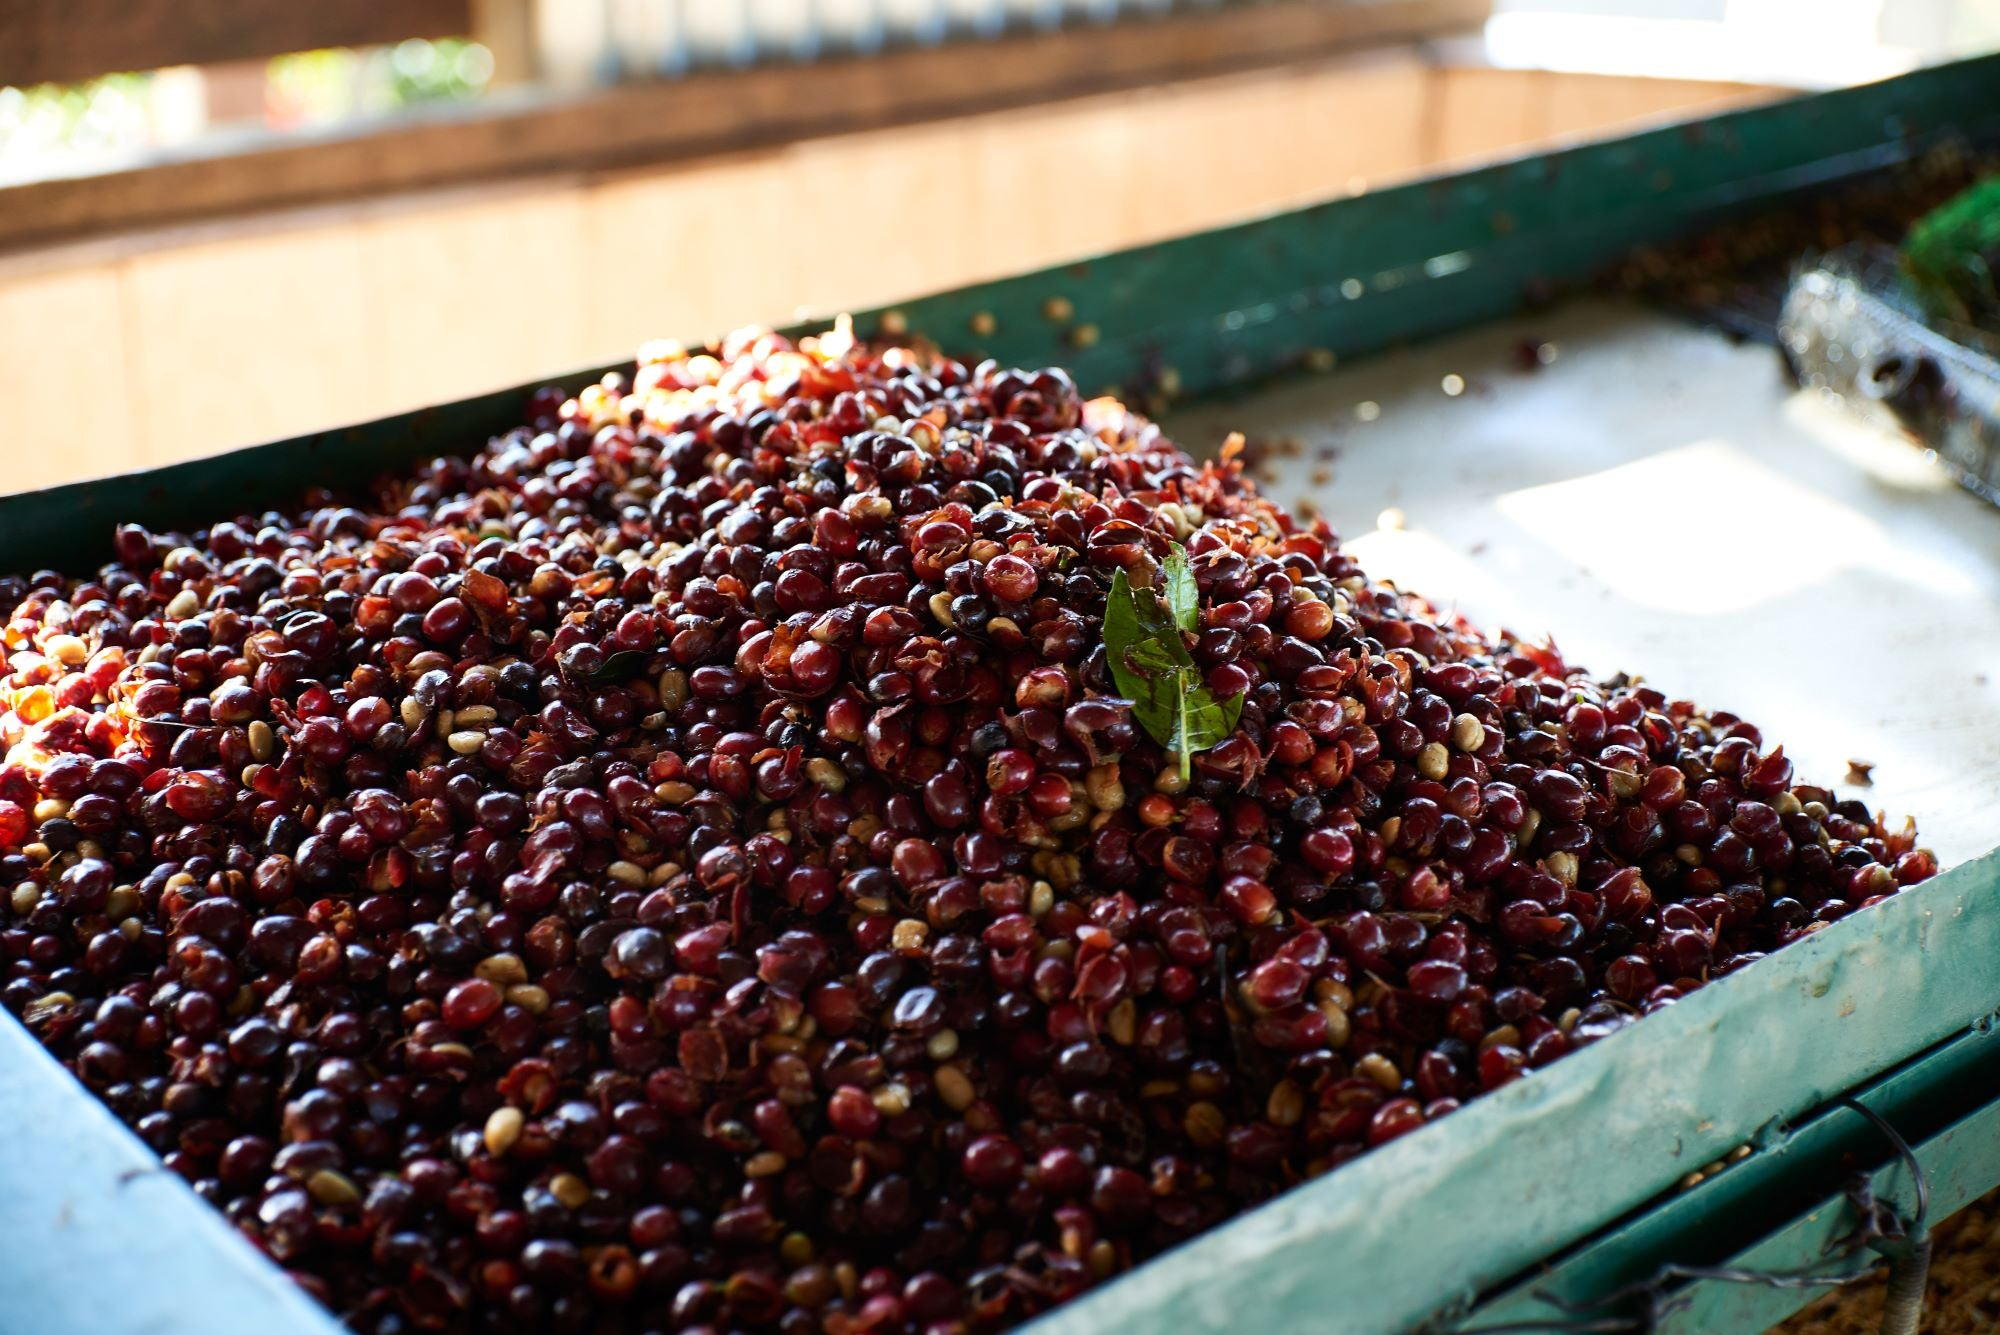 Cafetos de Segovia coffee micromill, Nicaragua, red coffee cherries in container